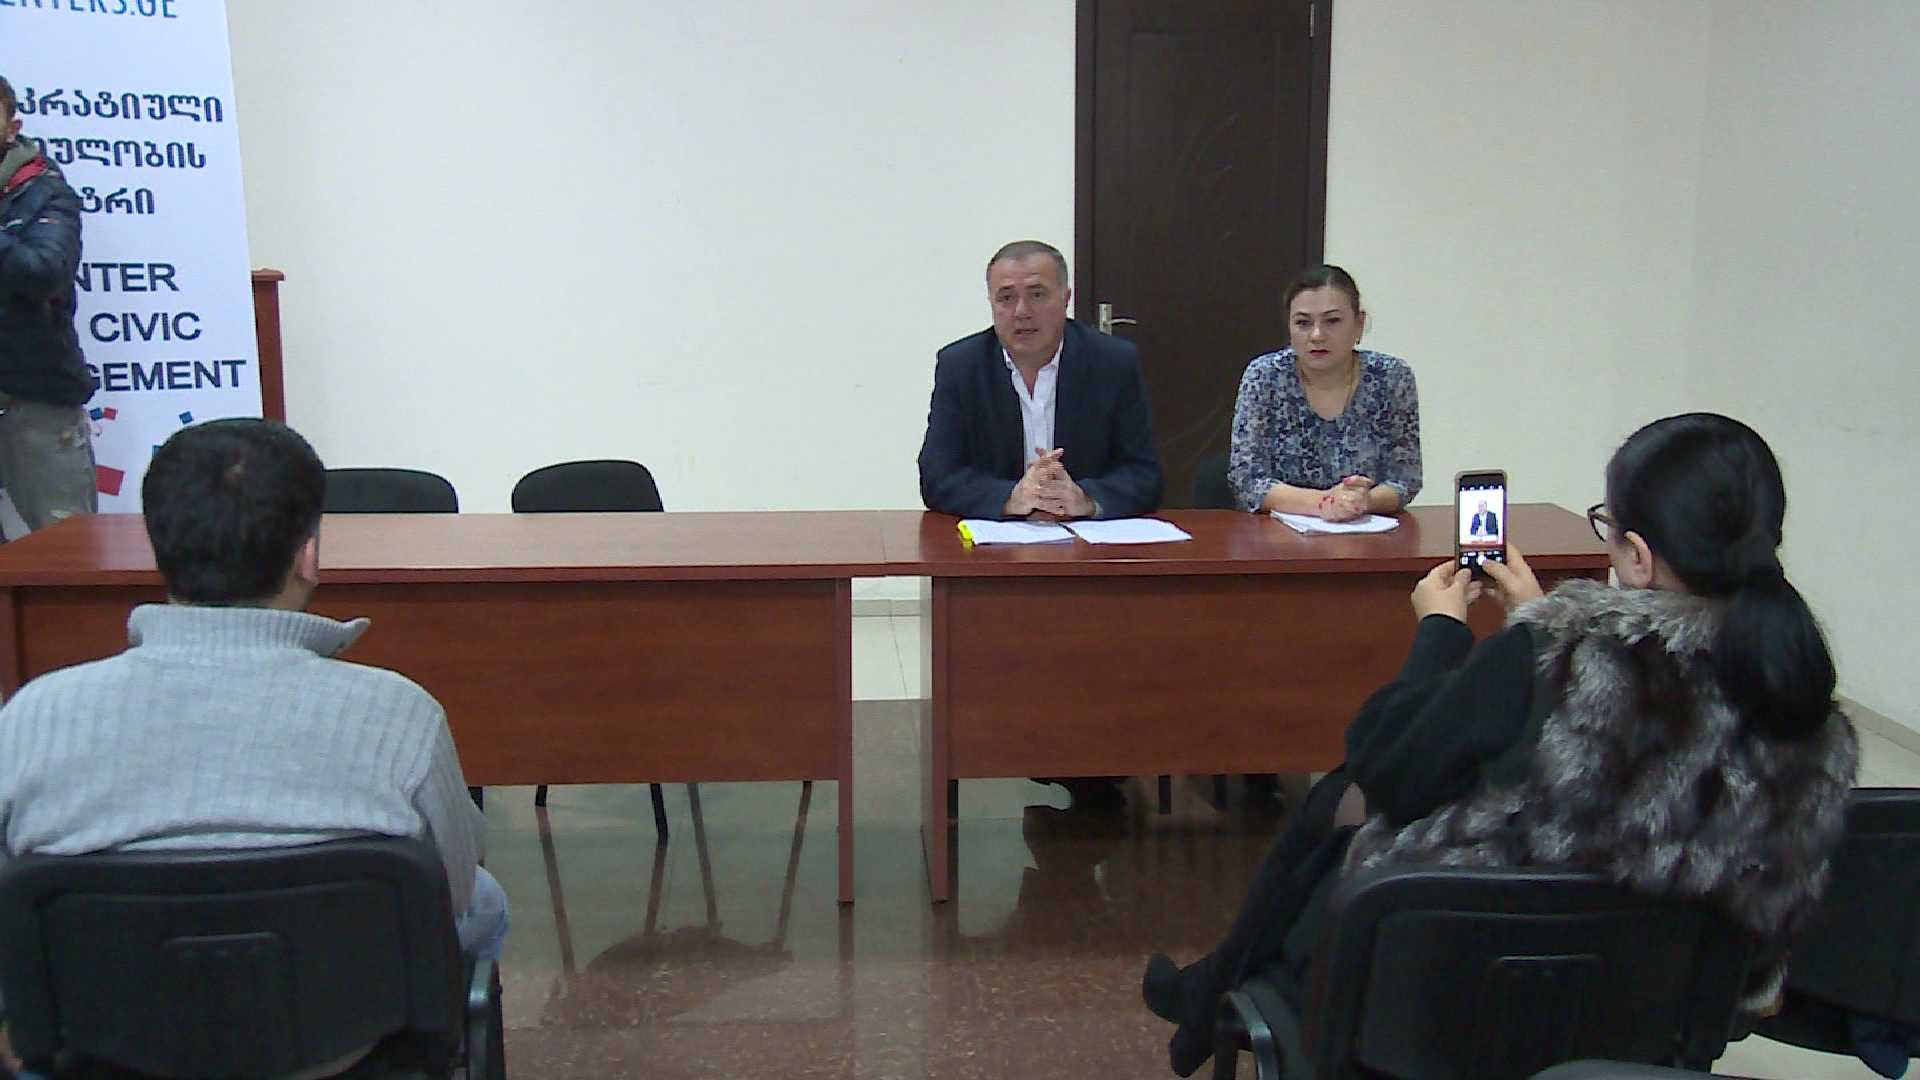 The collecting of signatures begins in order of constitutional amendments